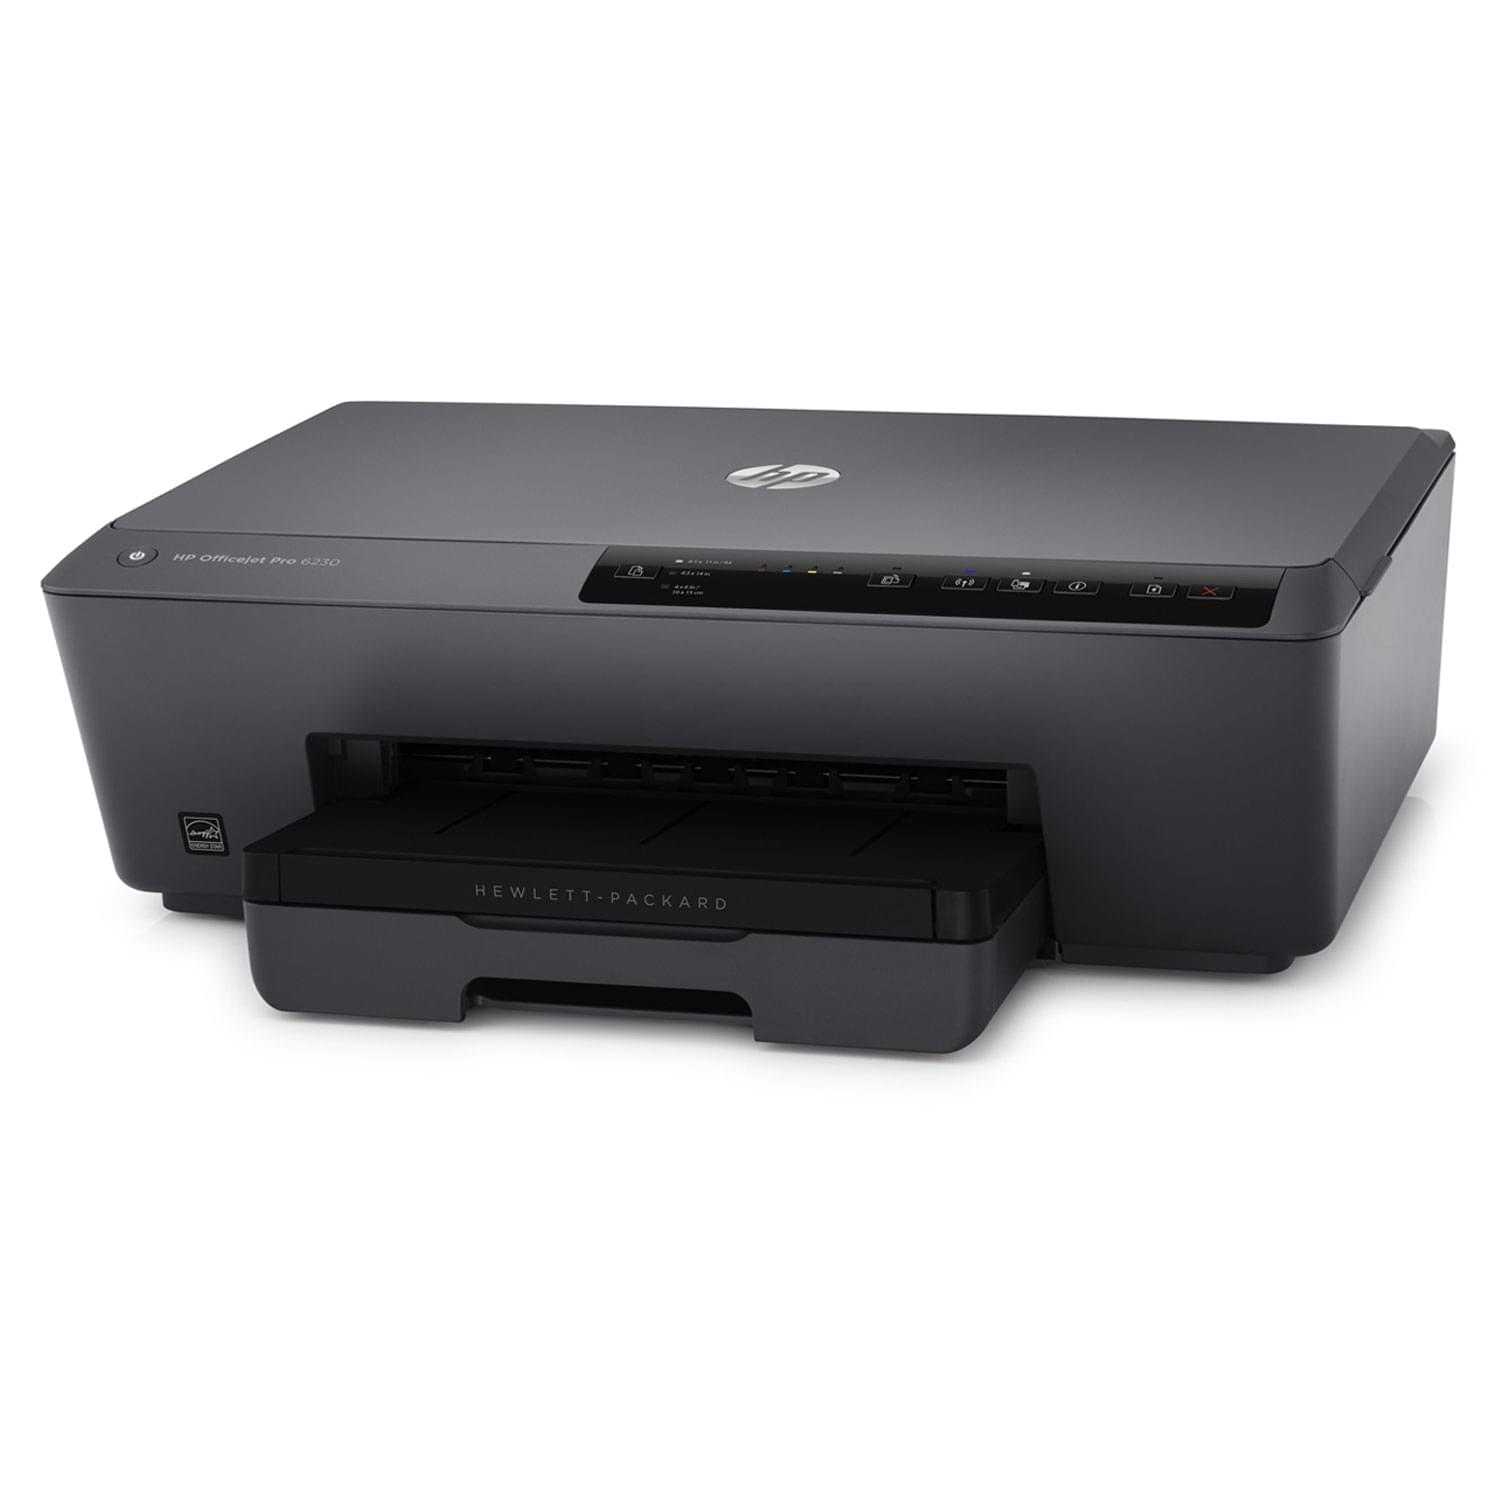 Imprimante HP OfficeJet PRO 6230 ePrinter - Cybertek.fr - 0